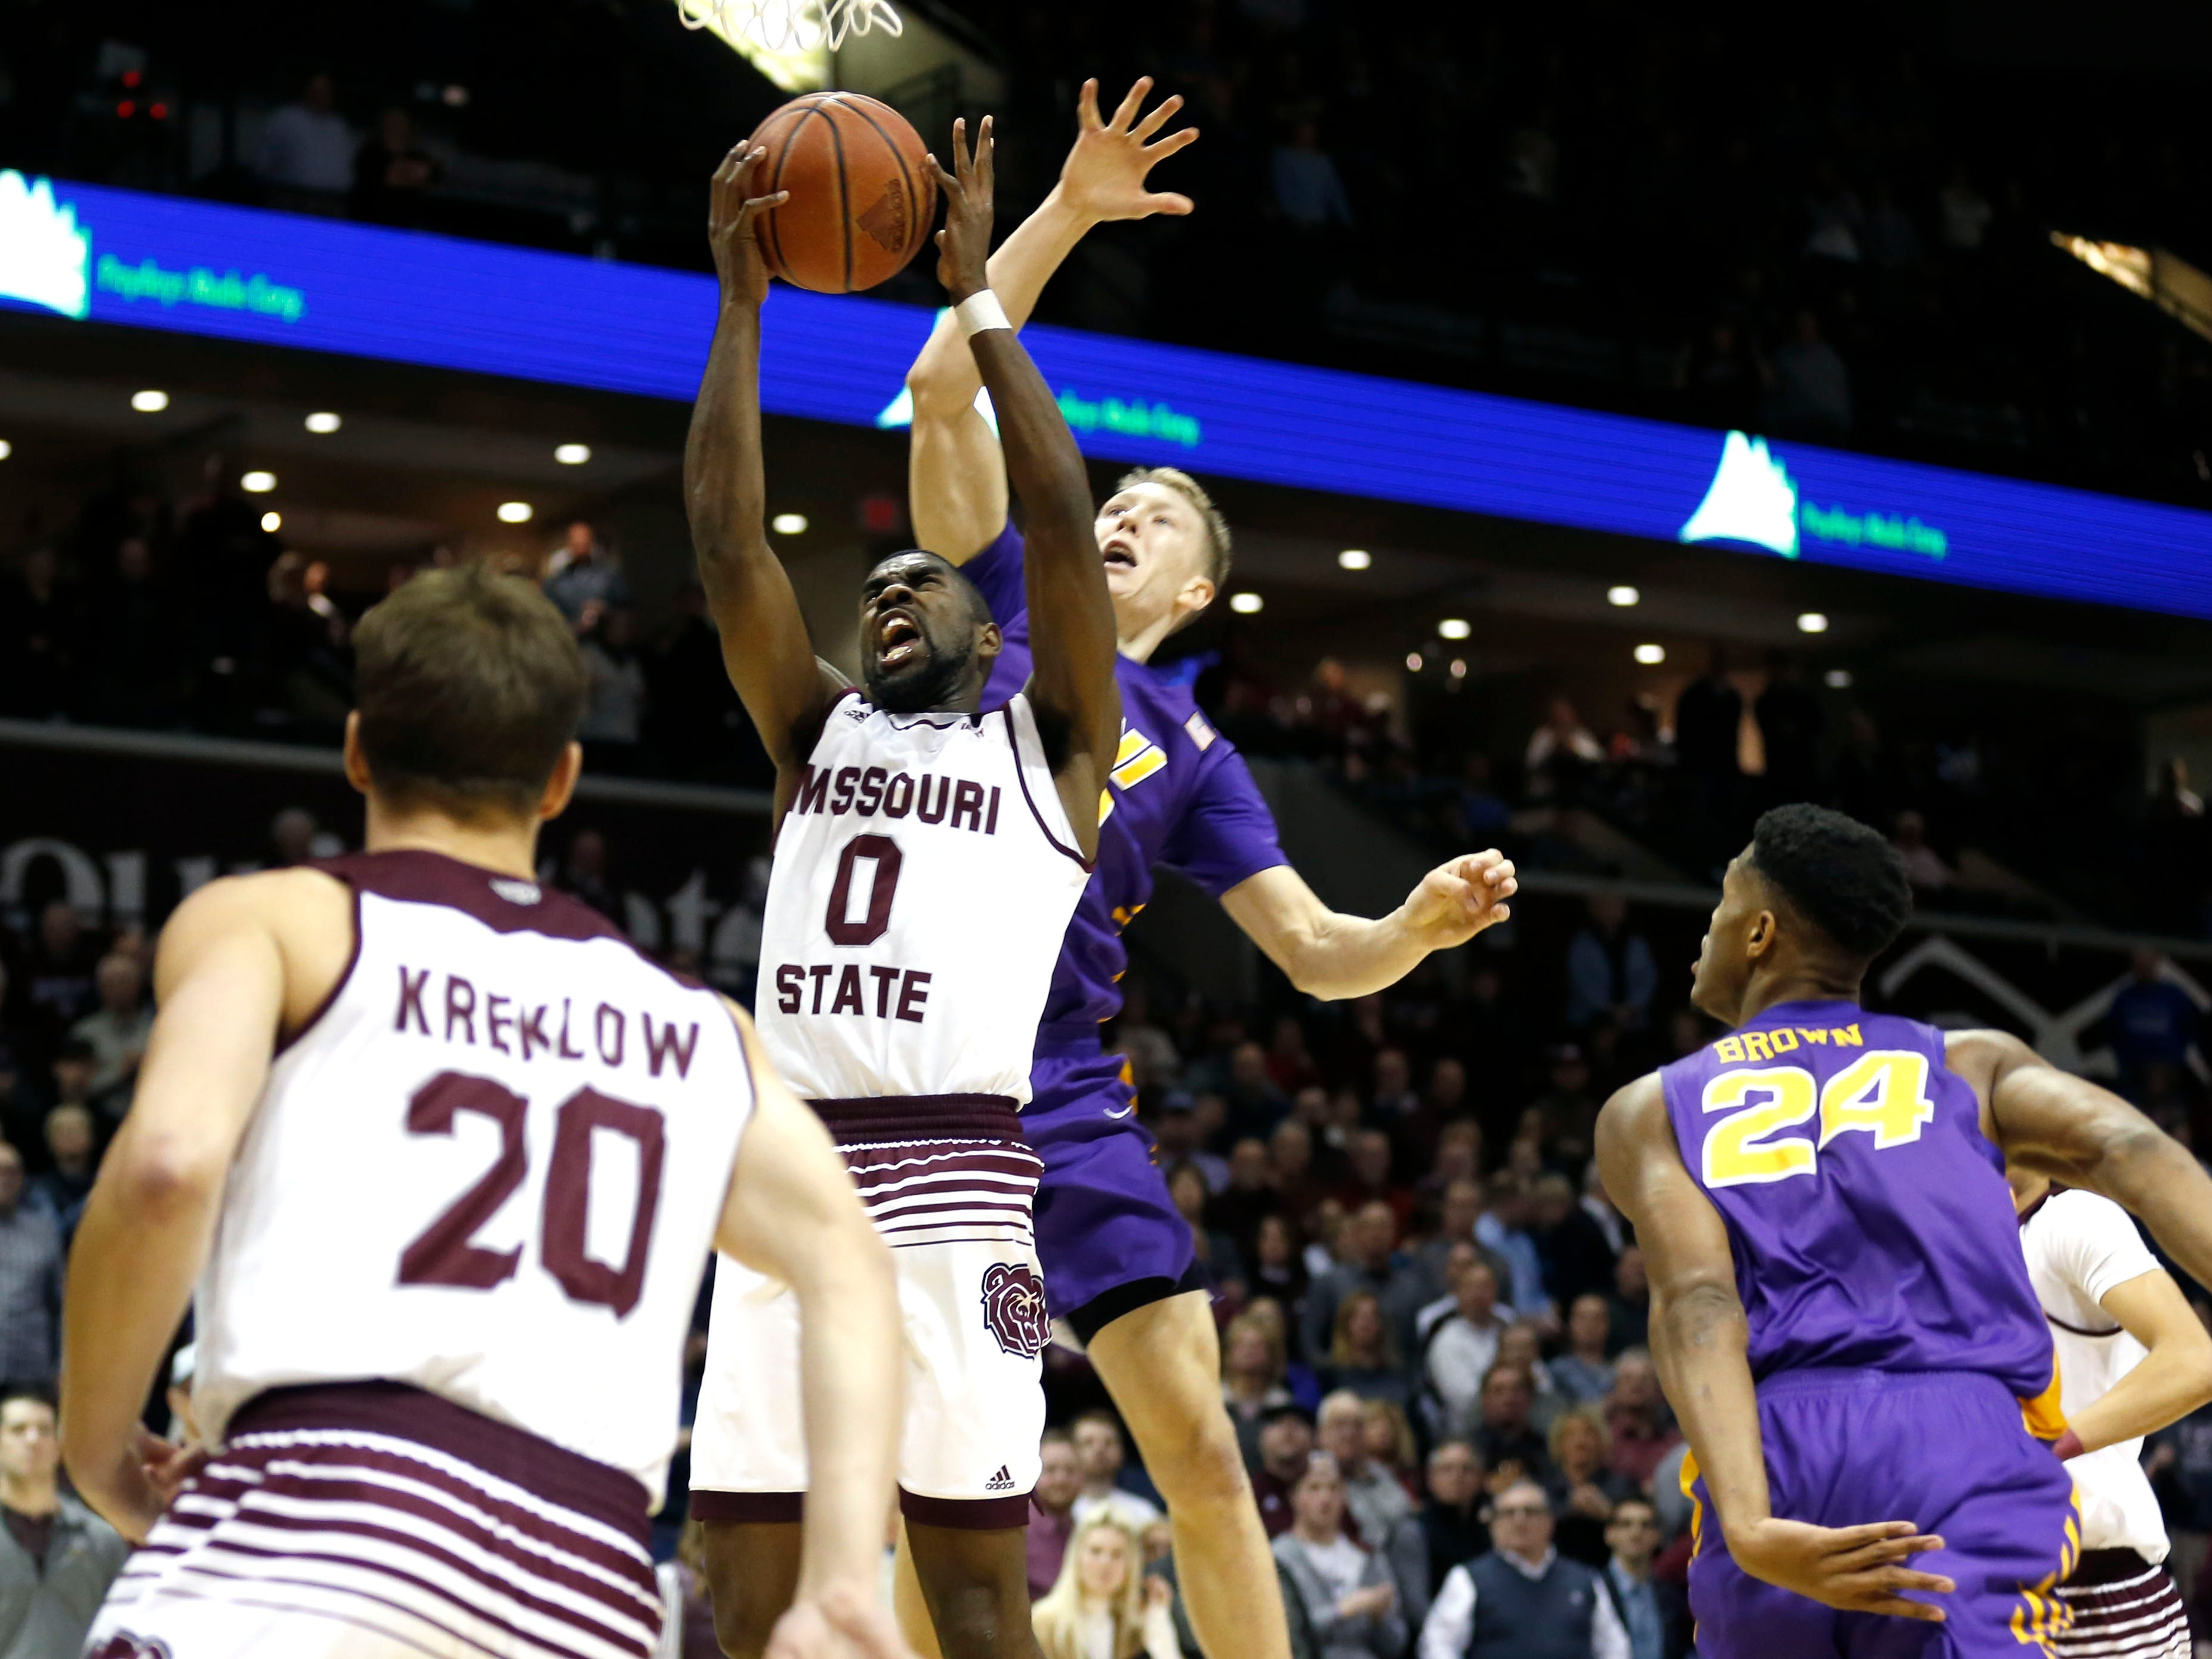 The Missouri State Bears take on the University of Northern Iowa Panthers at JQH Arena on Wednesday, Feb. 20, 2019.